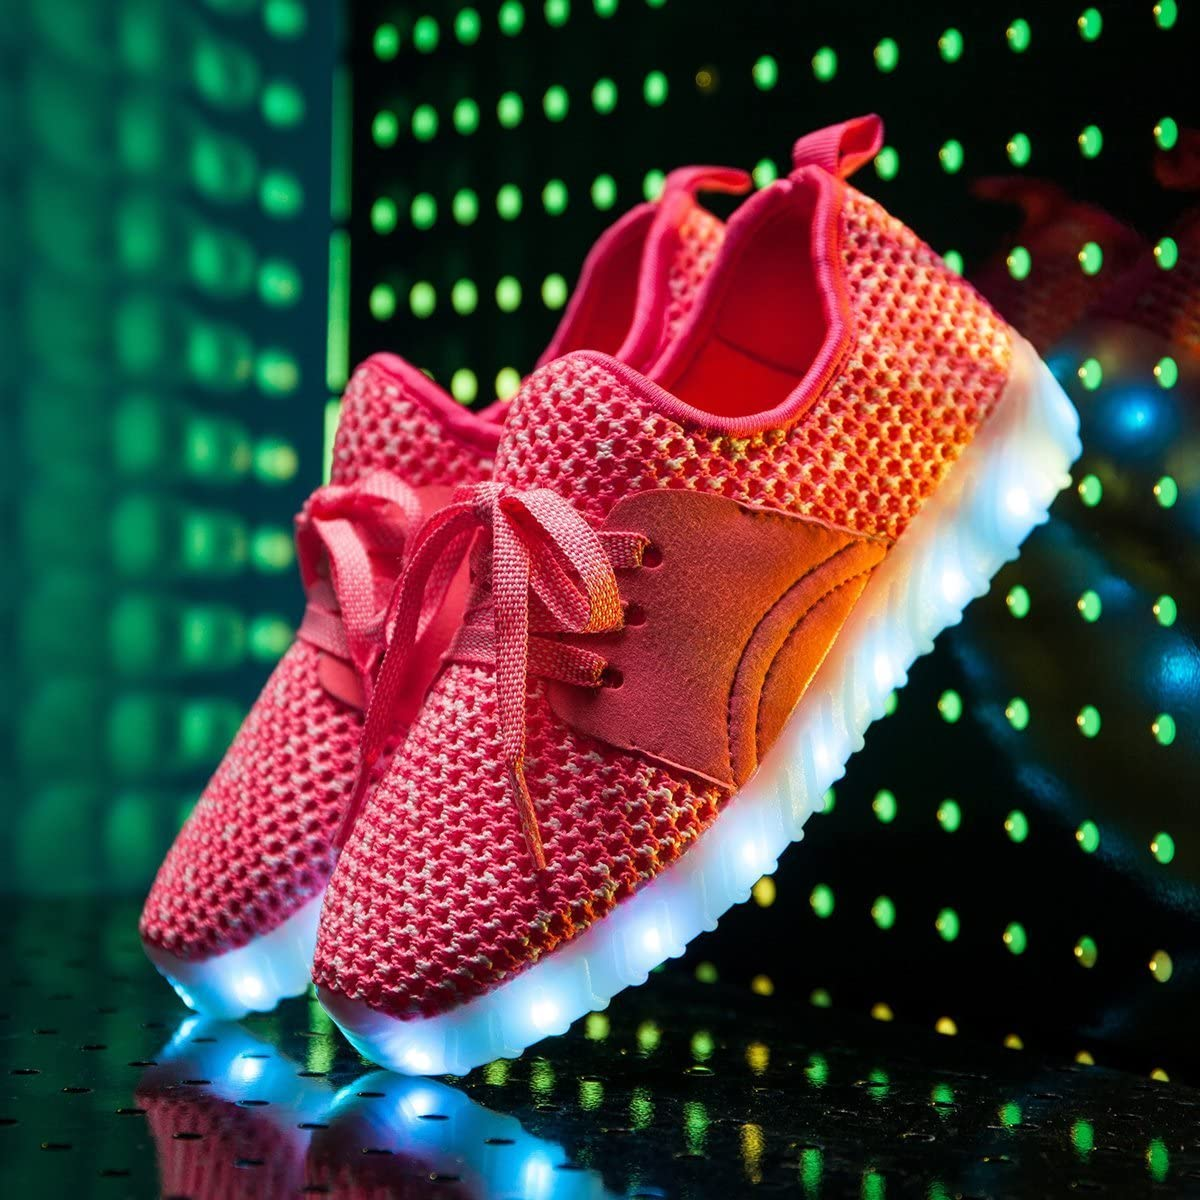 Pink - 34//3M US Little Kid A2kmsmss5a Kids Shoes Led Fashion Led Sneakers with Colorful Boys Luminous Sneakers Girls White Light up Shoes